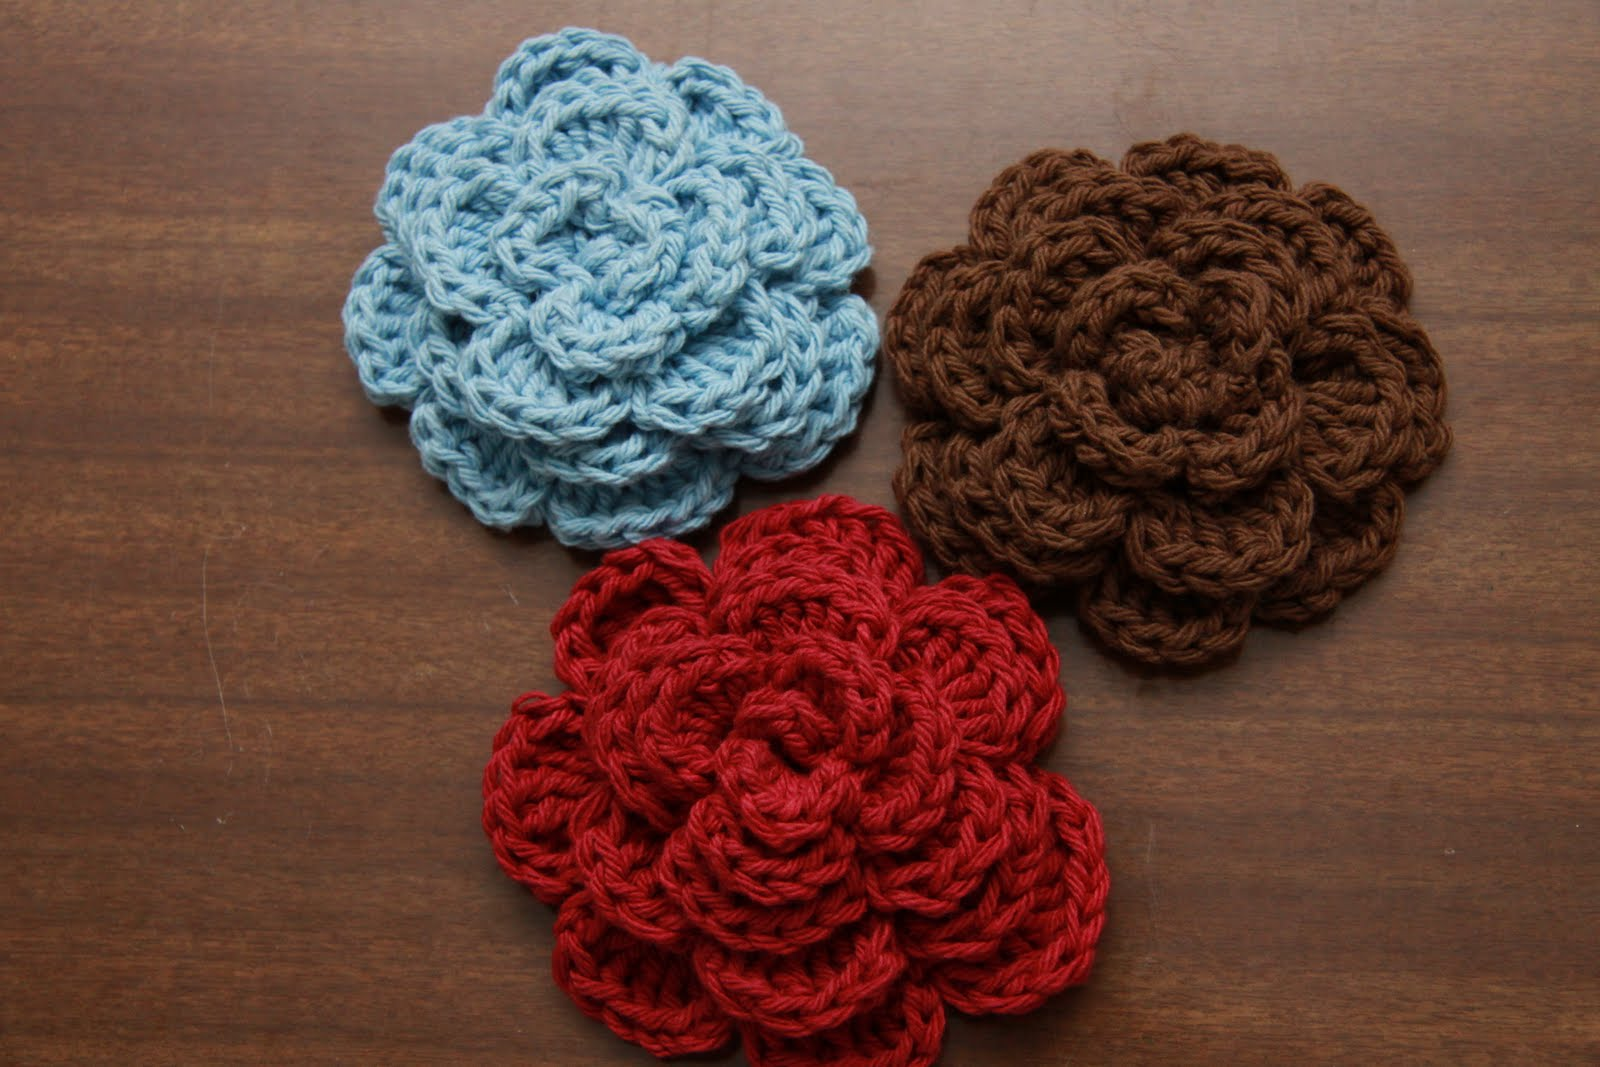 Crochet Hair Accessories Video : Crazy 4 Crafting: Crochet Hair Accessories